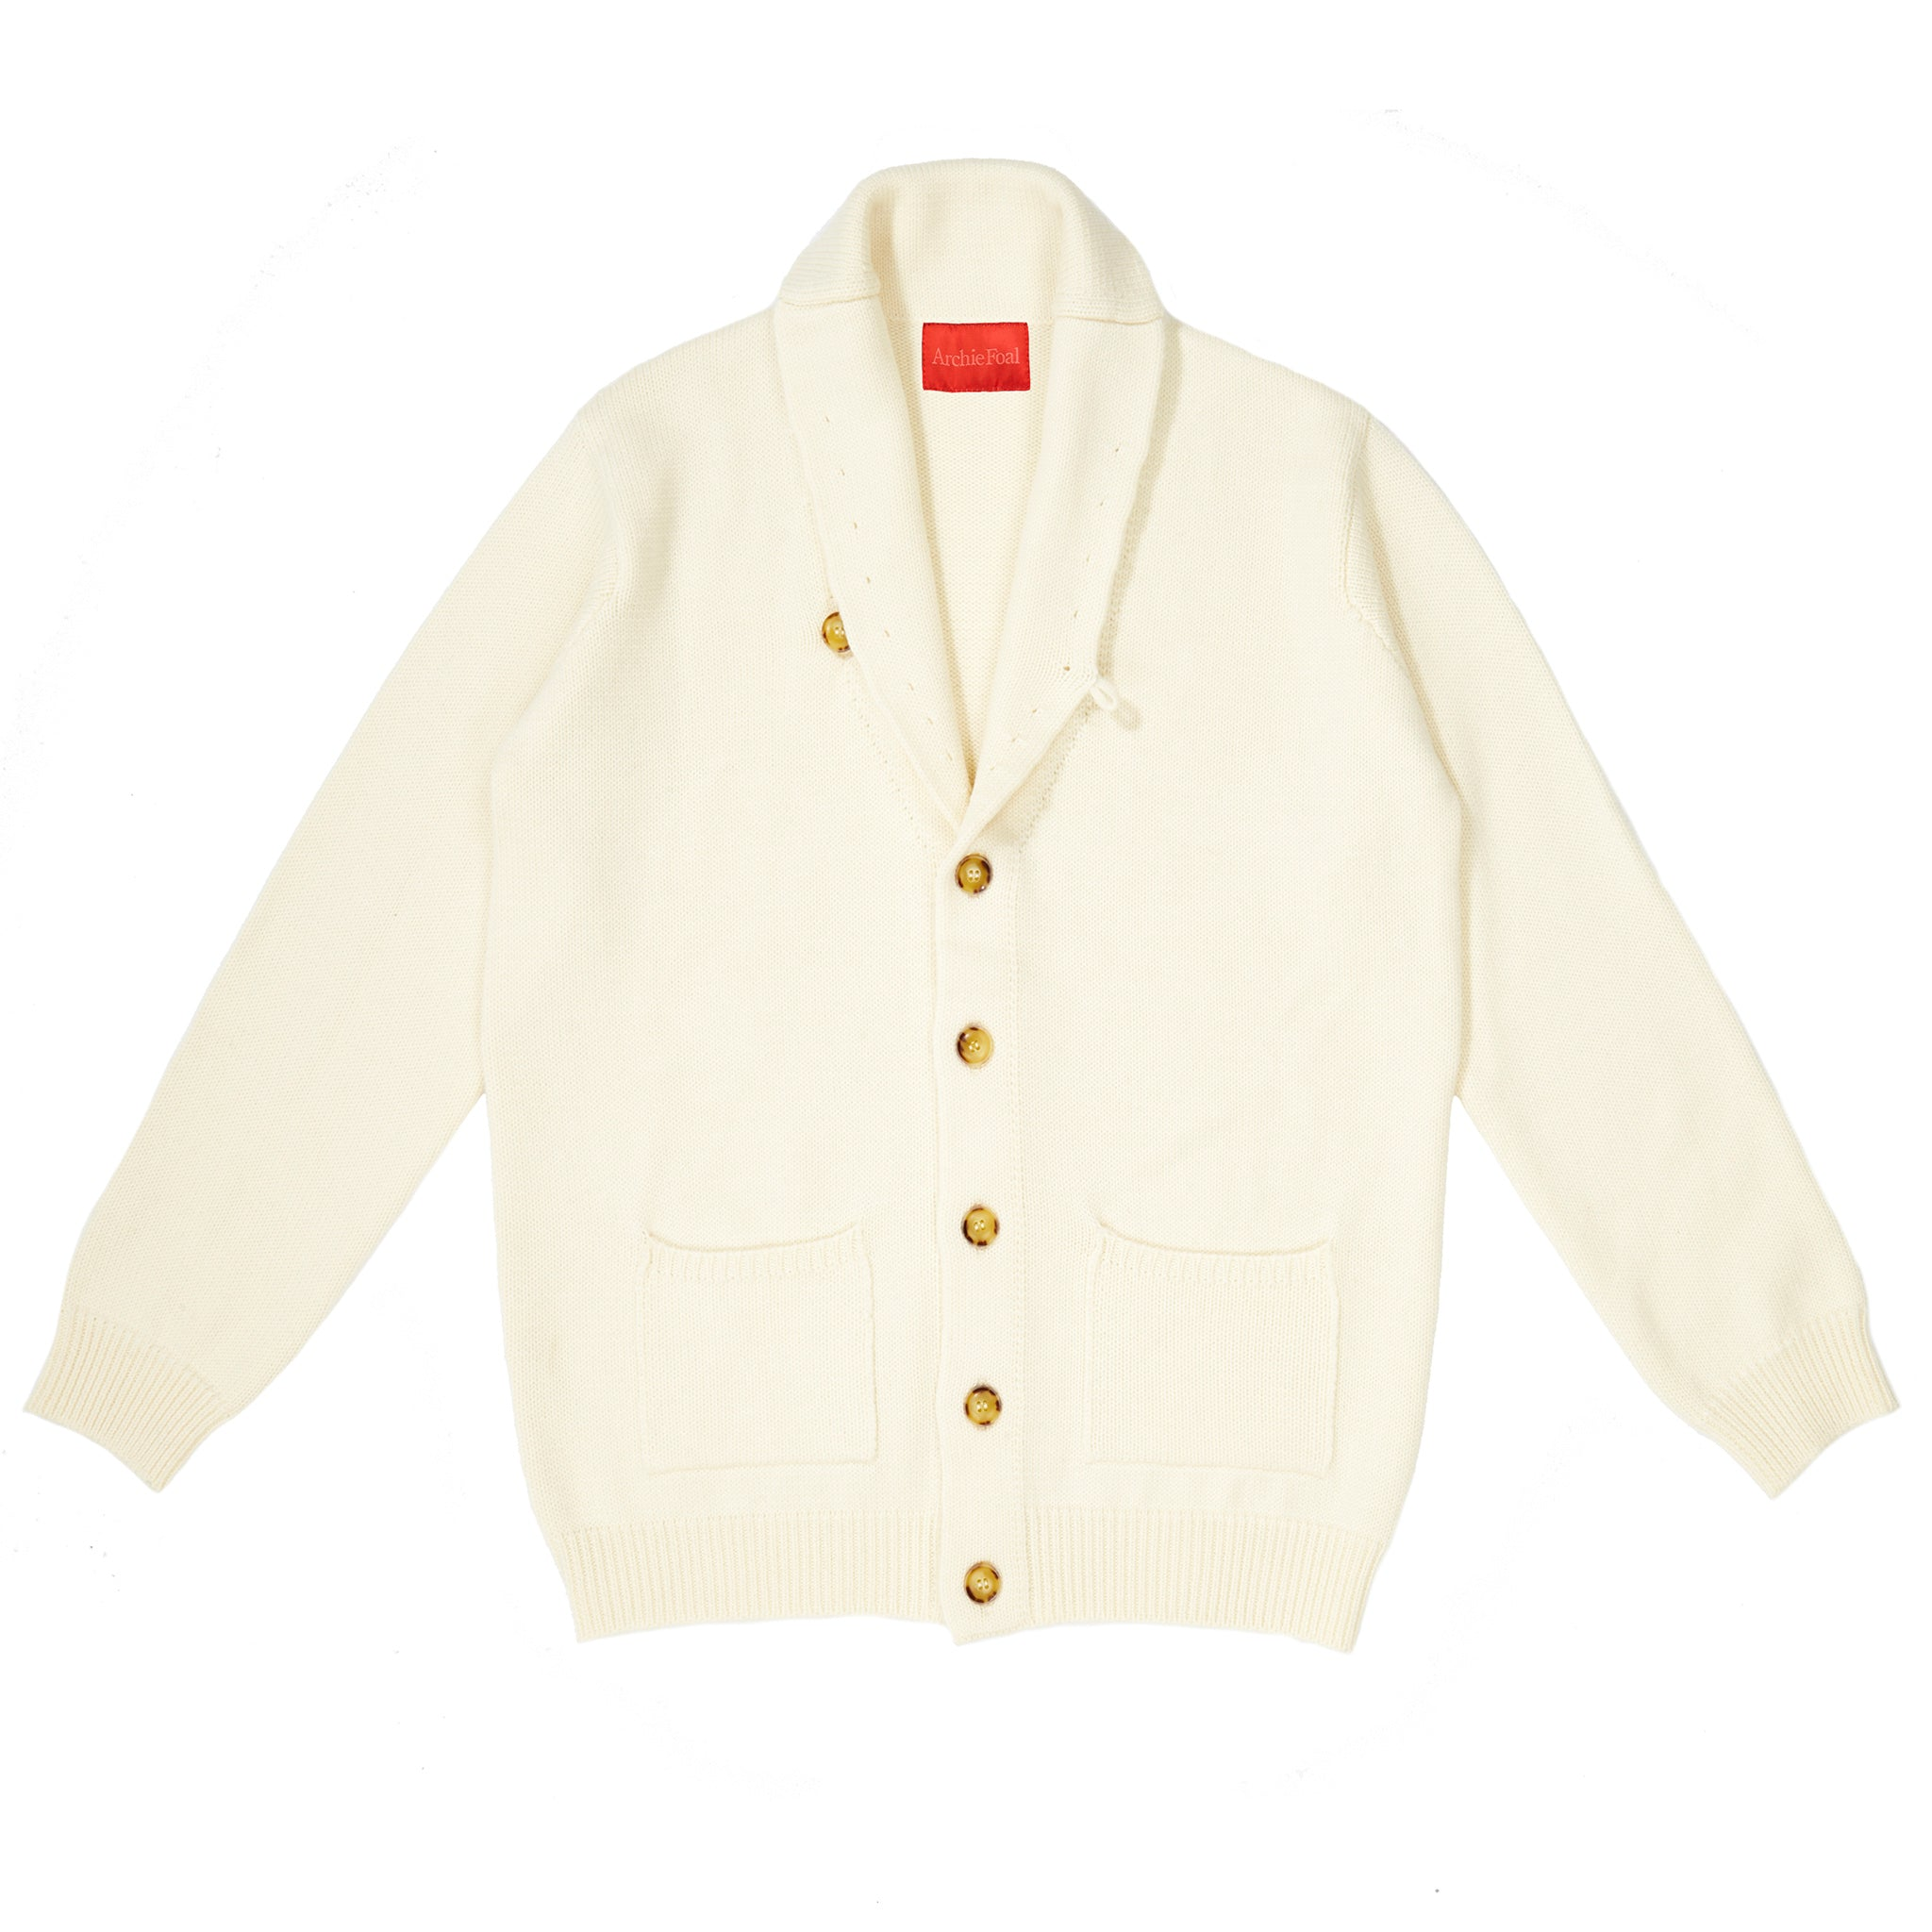 Archie Foal KENNAN Shawl Collar Cardigan in Cream